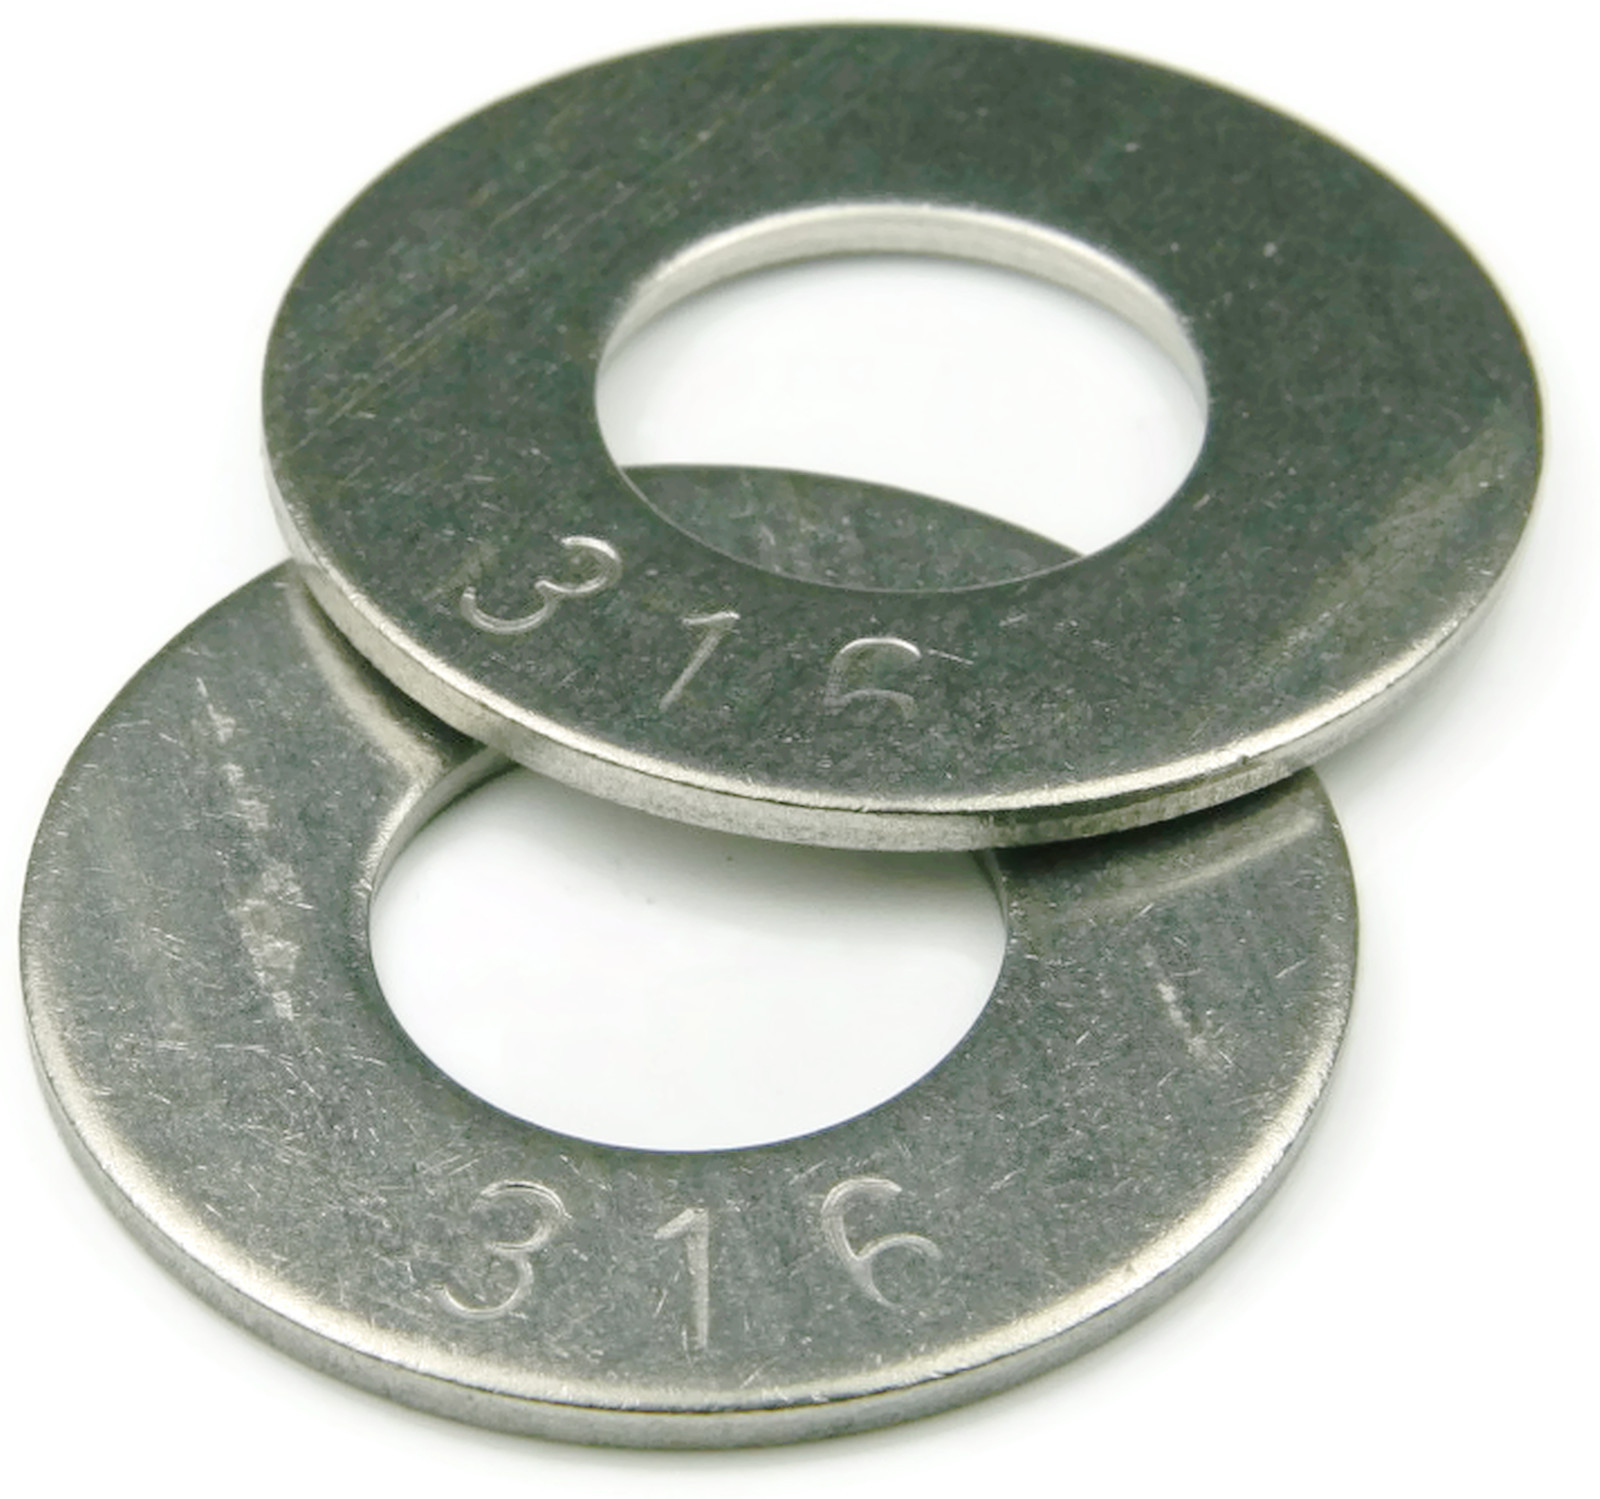 316 Stainless Steel Flat Washer 1//4 QTY 50